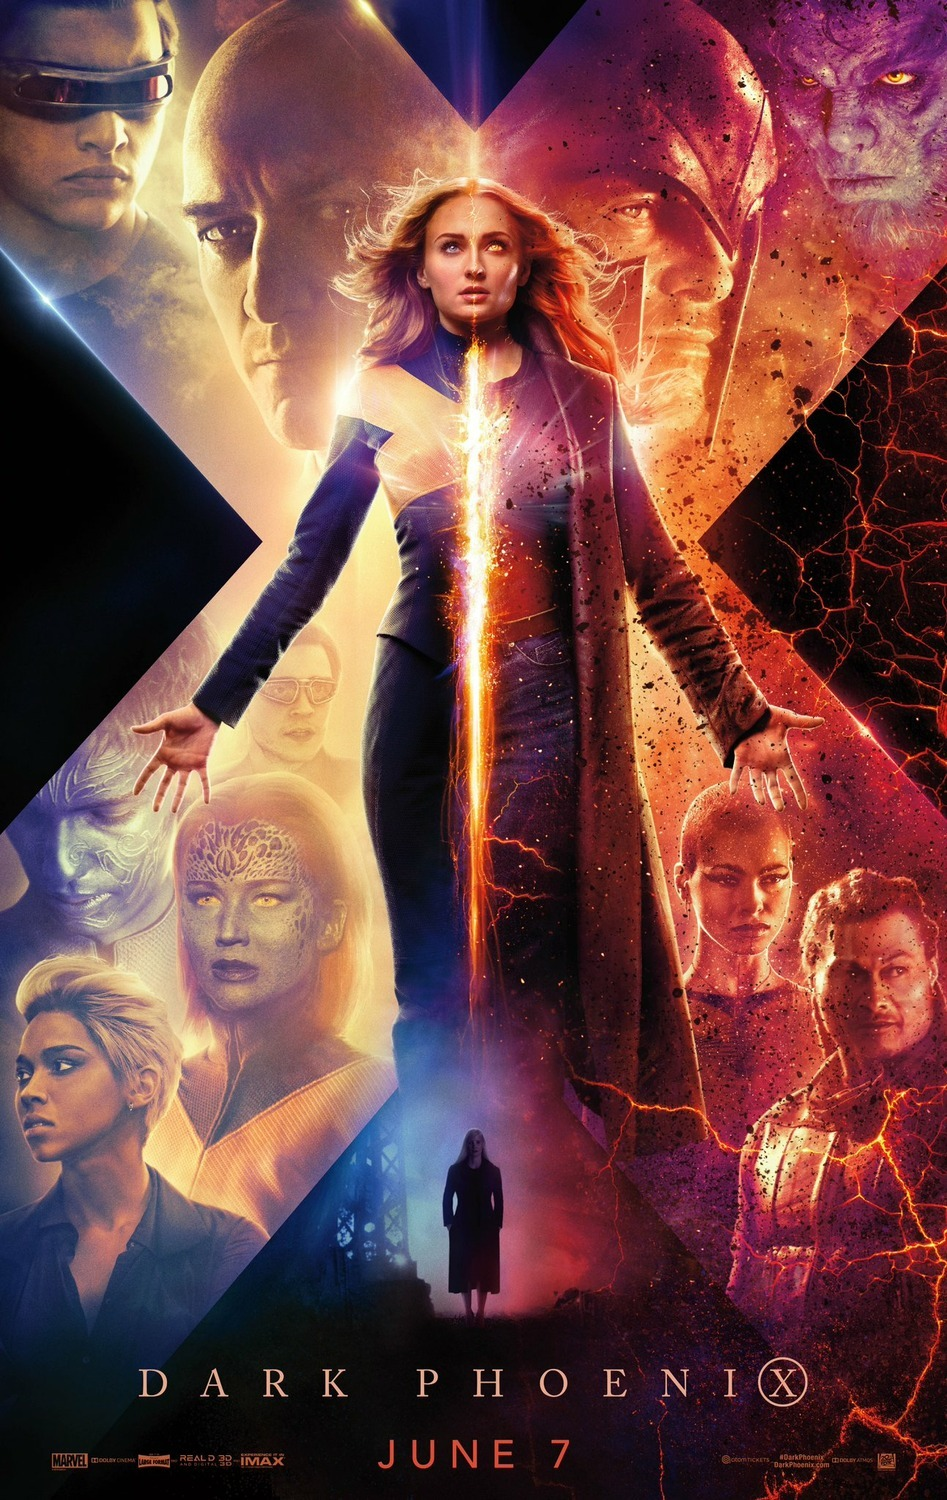 Dark Phoenix (2019) BluRay 720p, 1080p & 4K-2160p